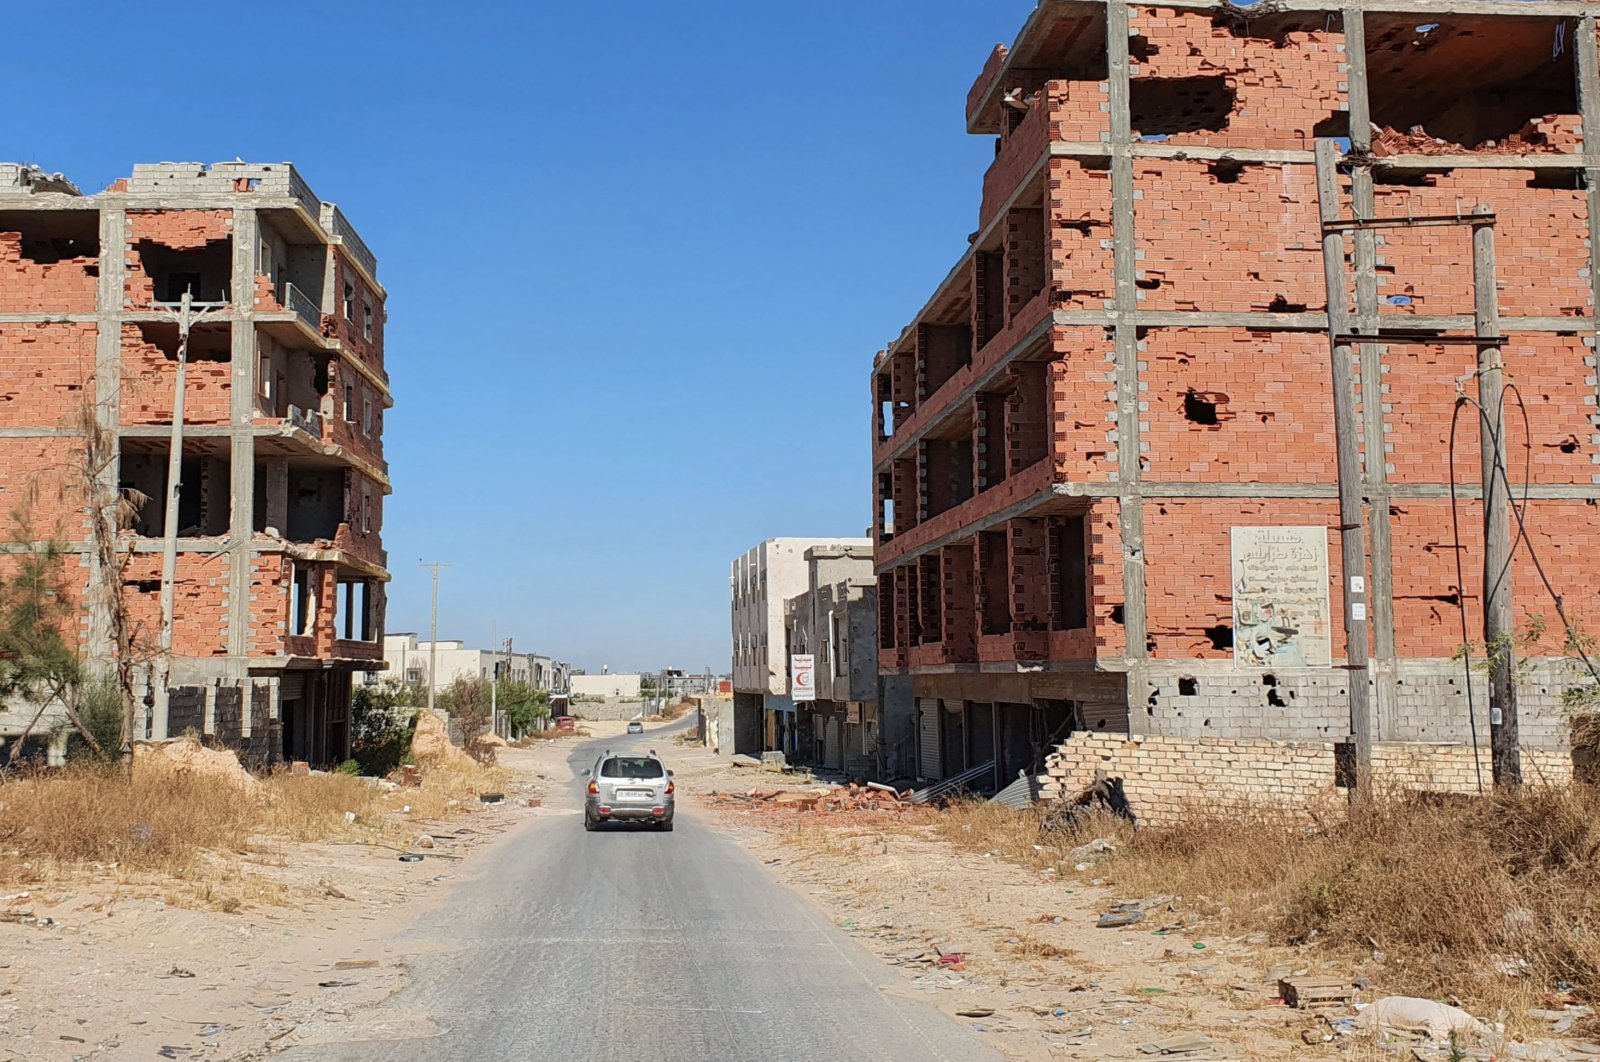 A car advances on an empty road between damaged buidlings in the Salaheddin district south of the Libyan capital Tripoli, June 21, 2020. (AFP)